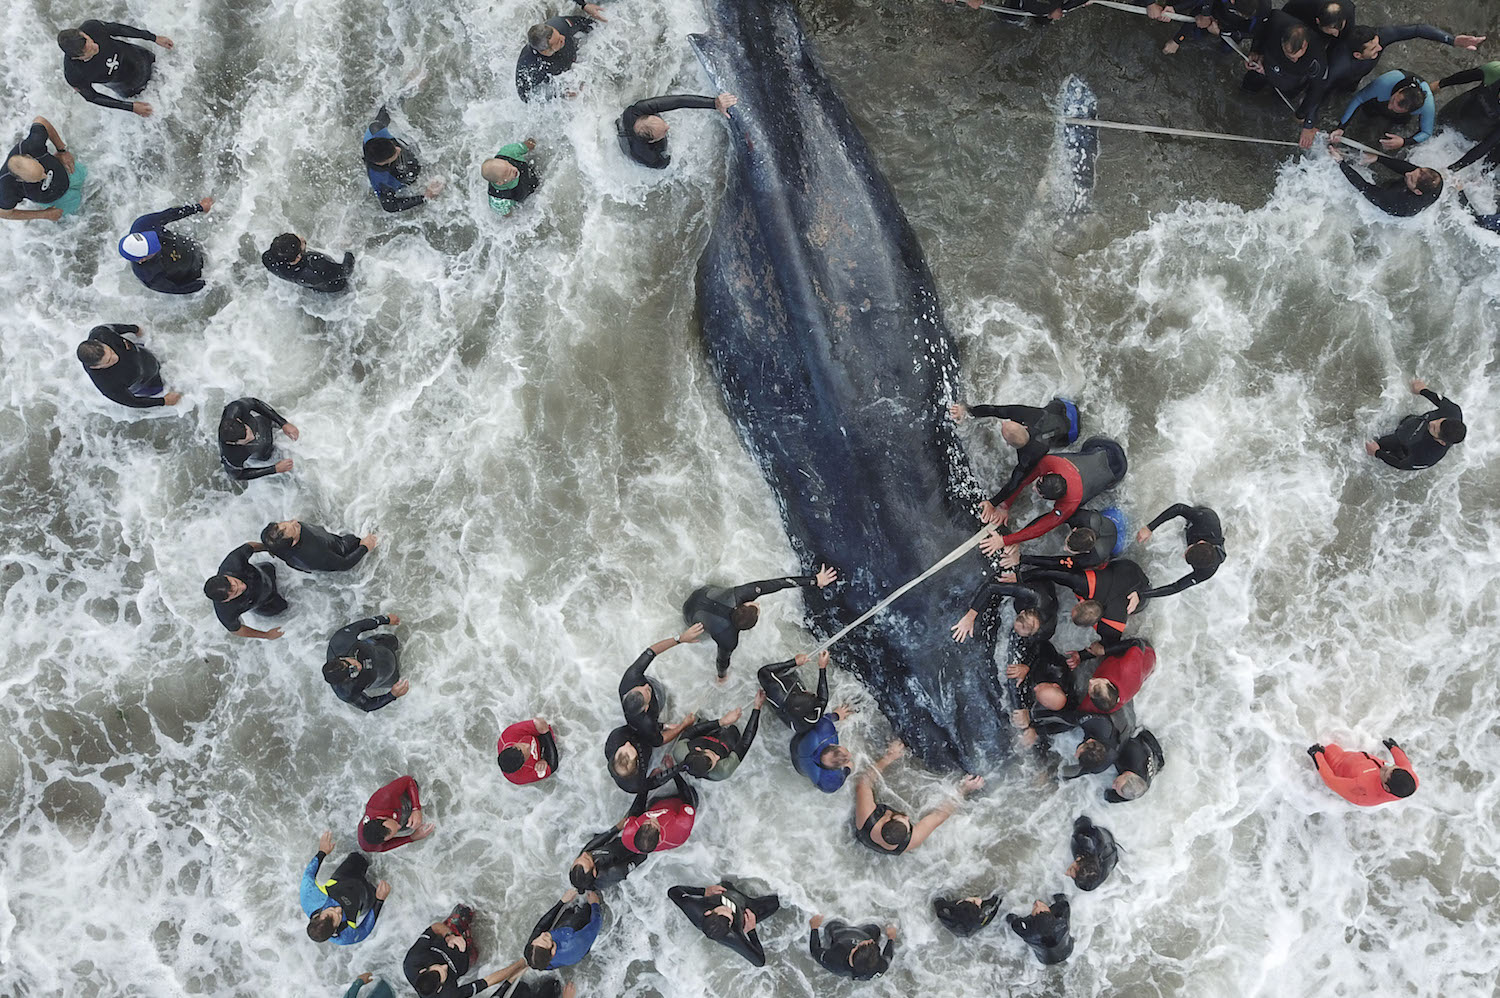 "Picture released by Telam showing rescue workers and locals helping a stranded whale in Mar del Plata, Argentina, on April 9, 2018. The whale died despite rescue efforts.  / AFP PHOTO / TELAM / DIEGO IZQUIERDO / Argentina OUT / RESTRICTED TO EDITORIAL USE - MANDATORY CREDIT ""AFP PHOTO / TELAM / DIEGO IZQUIERDO"" - NO MARKETING NO ADVERTISING CAMPAIGNS - DISTRIBUTED AS A SERVICE TO CLIENTS        (Photo credit should read DIEGO IZQUIERDO/AFP/Getty Images)"